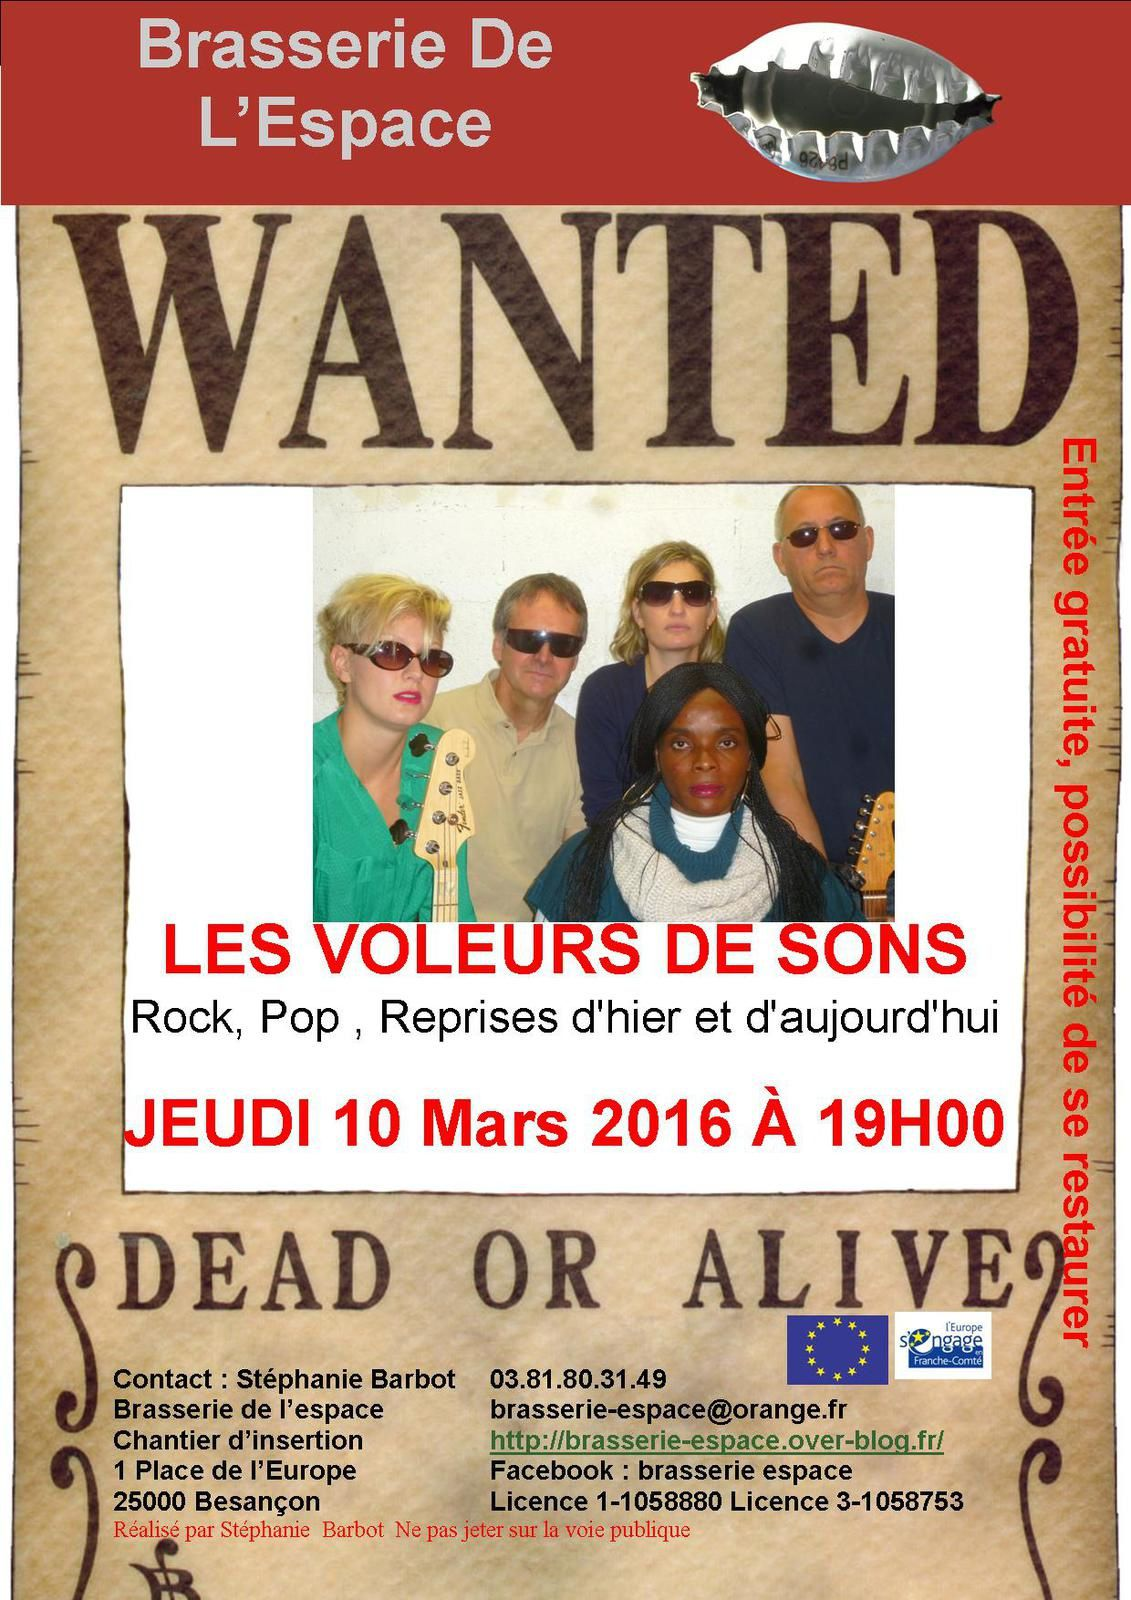 LES VOLEURS DE SONS 10 mars 2016 Attention changement de programmation